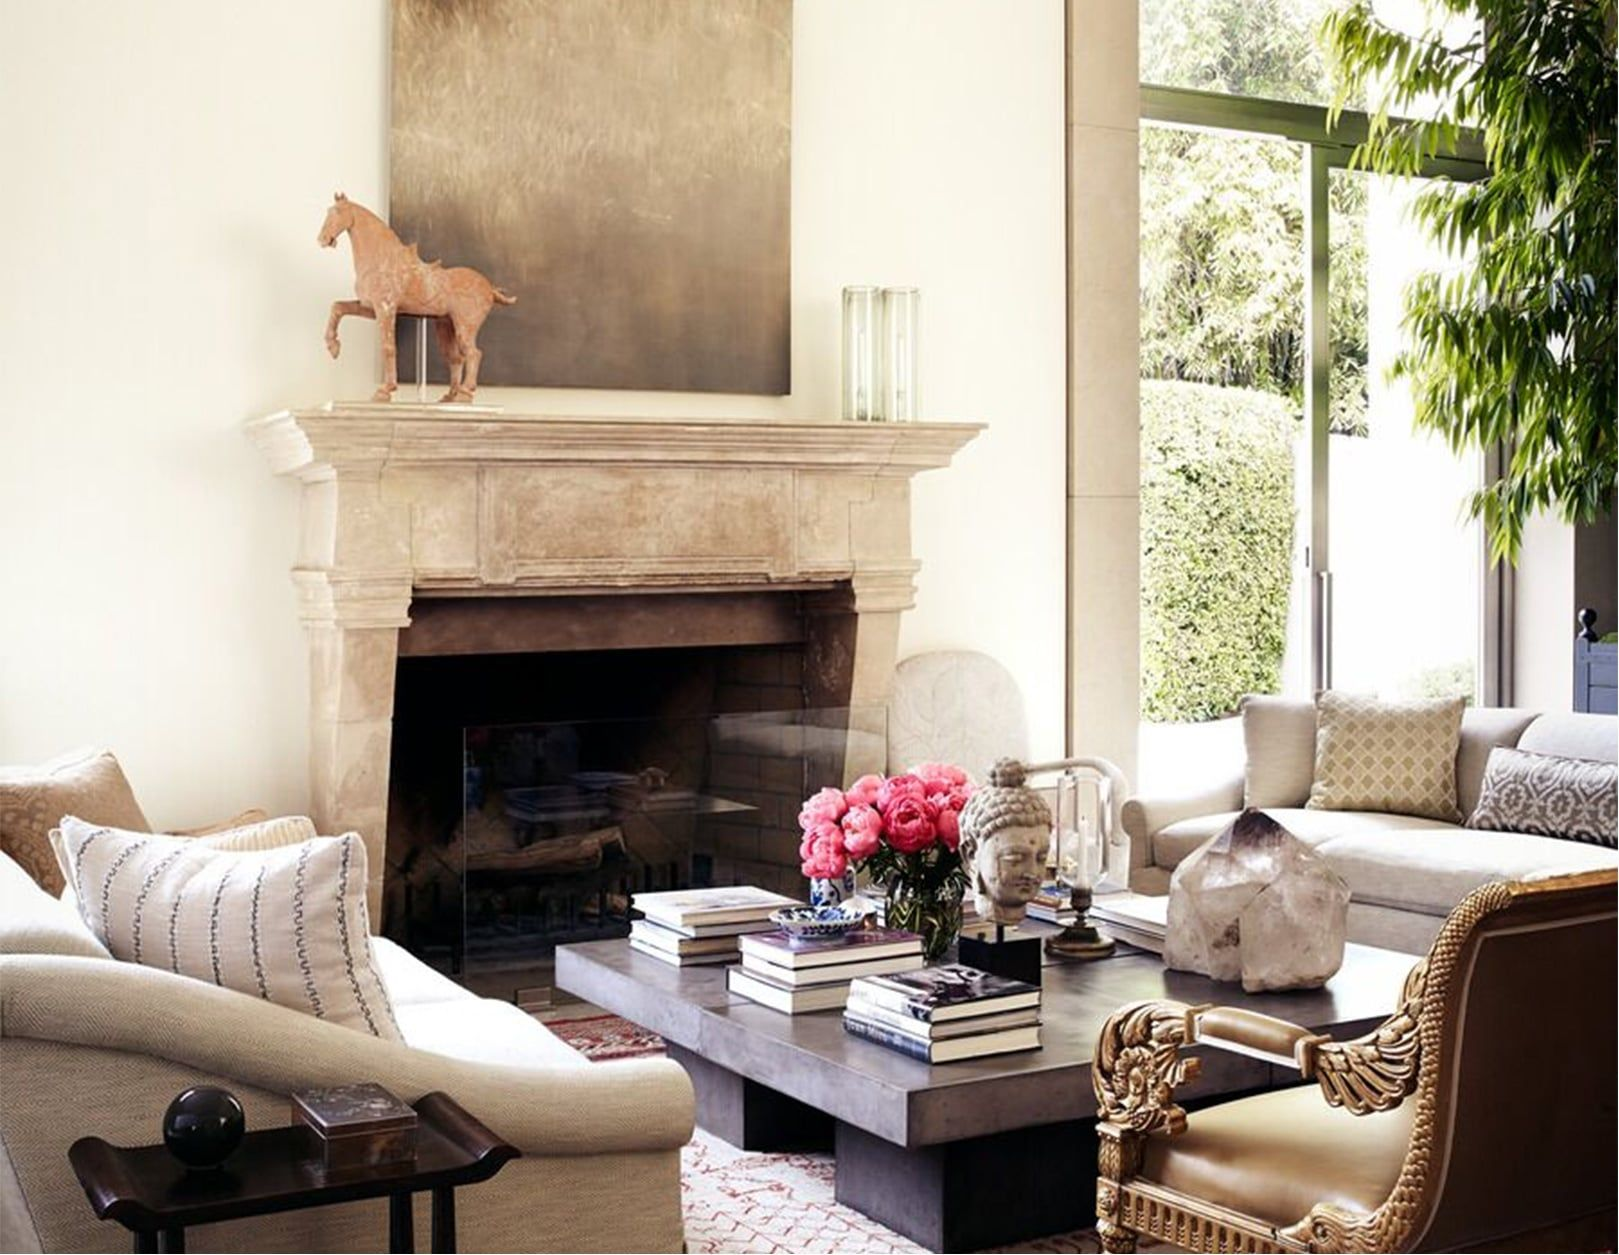 Michael S Smith Design Tips With Images Living Room Design